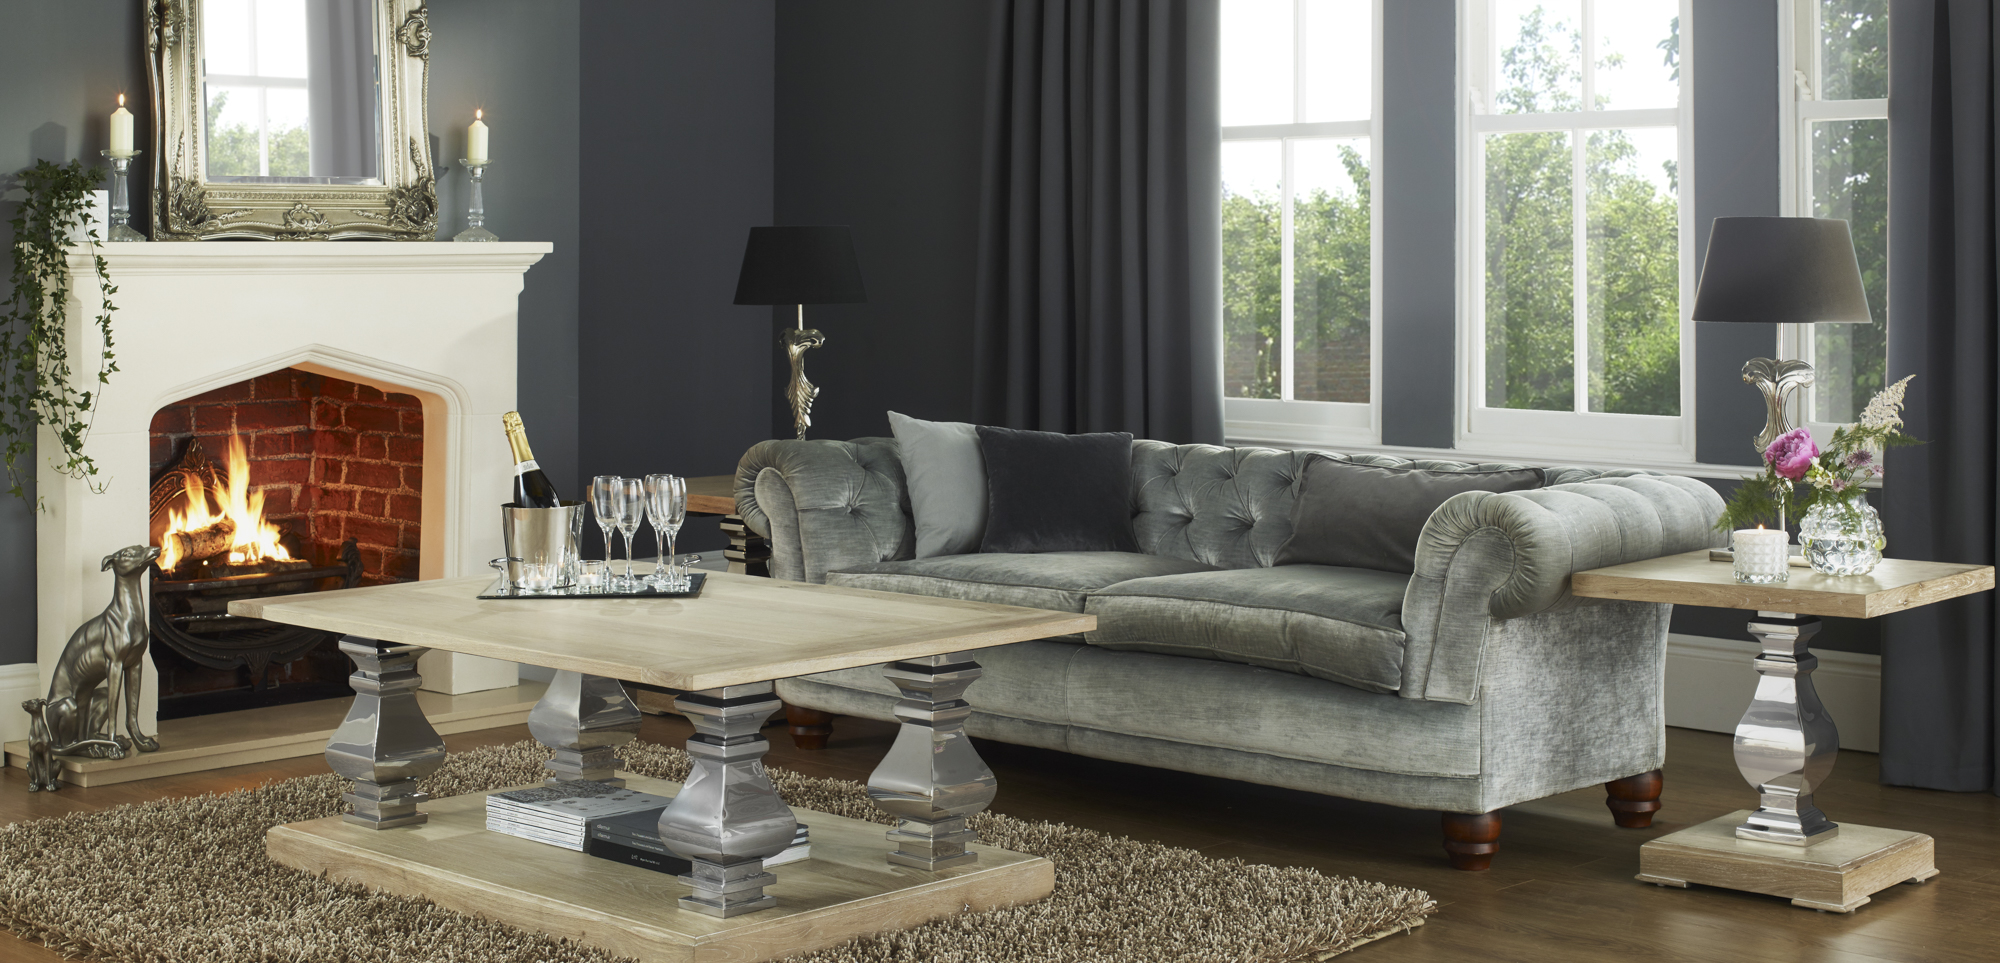 Presenting the Oak Stainless Steel Furniture Collection